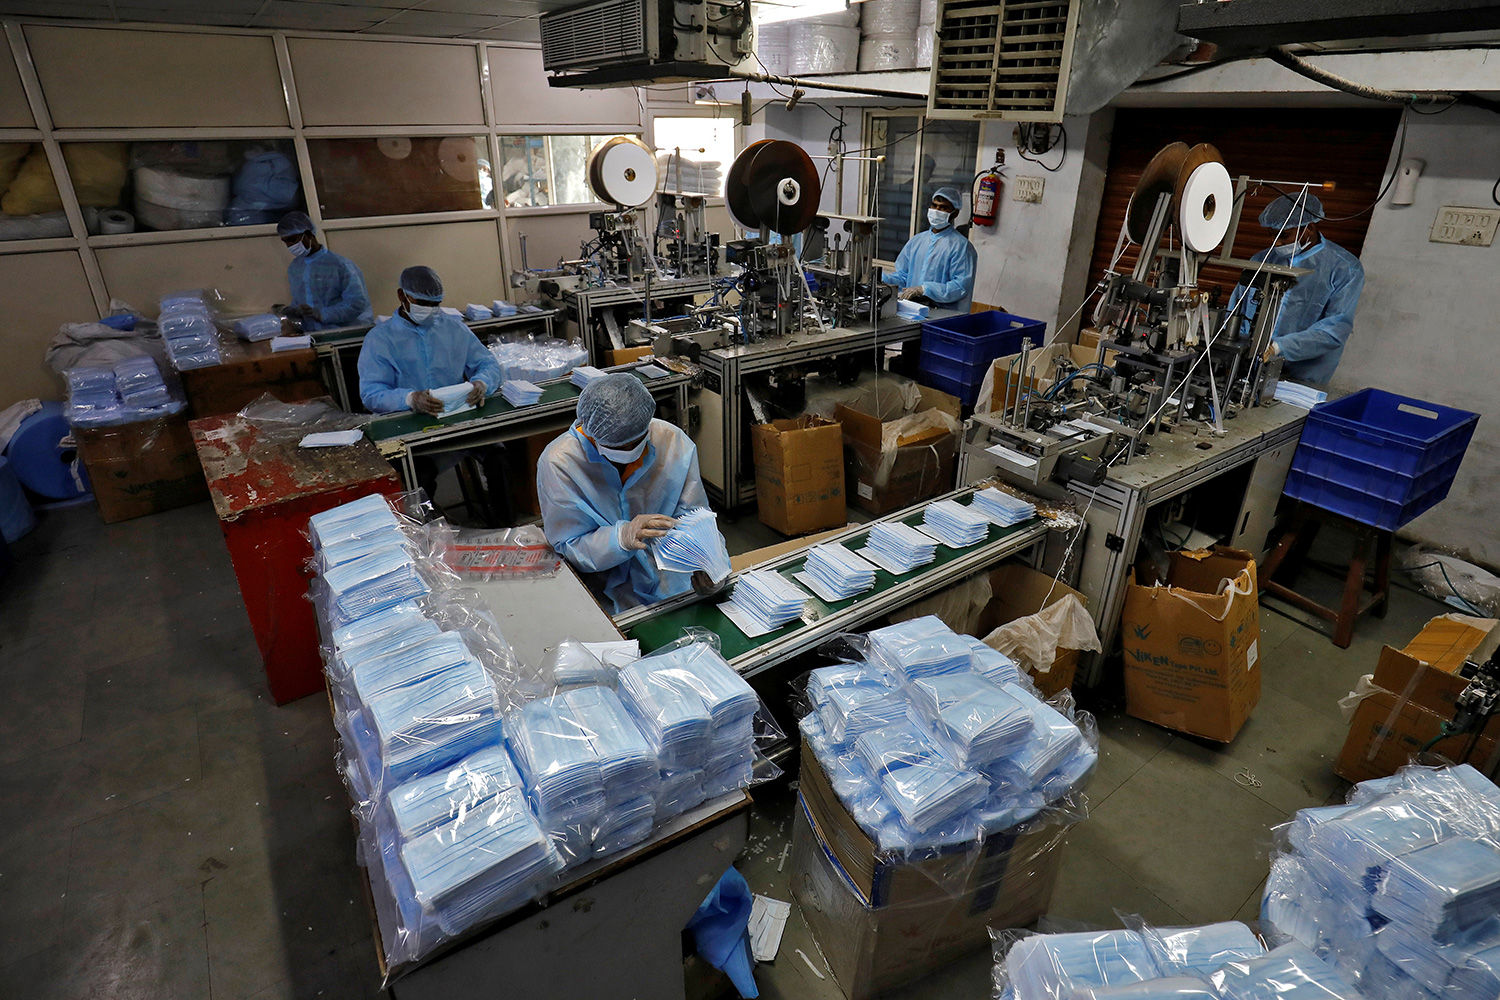 The photo shows a factory interior where several workers are at stations stacked high with blue surgical-style masks.